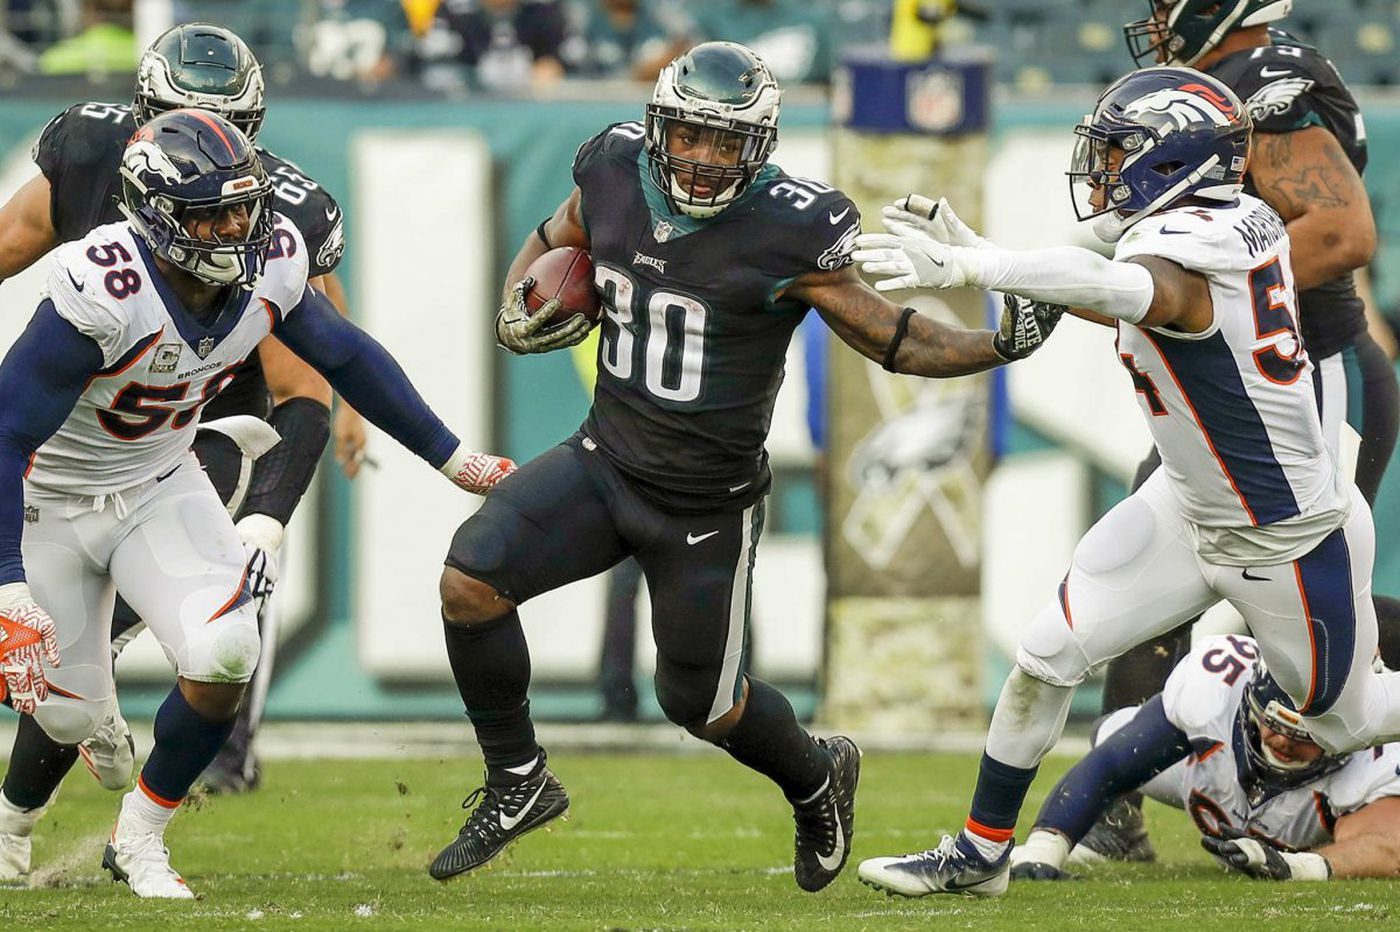 Corey Clement's three-TD day shows depth, potential of Eagles offense